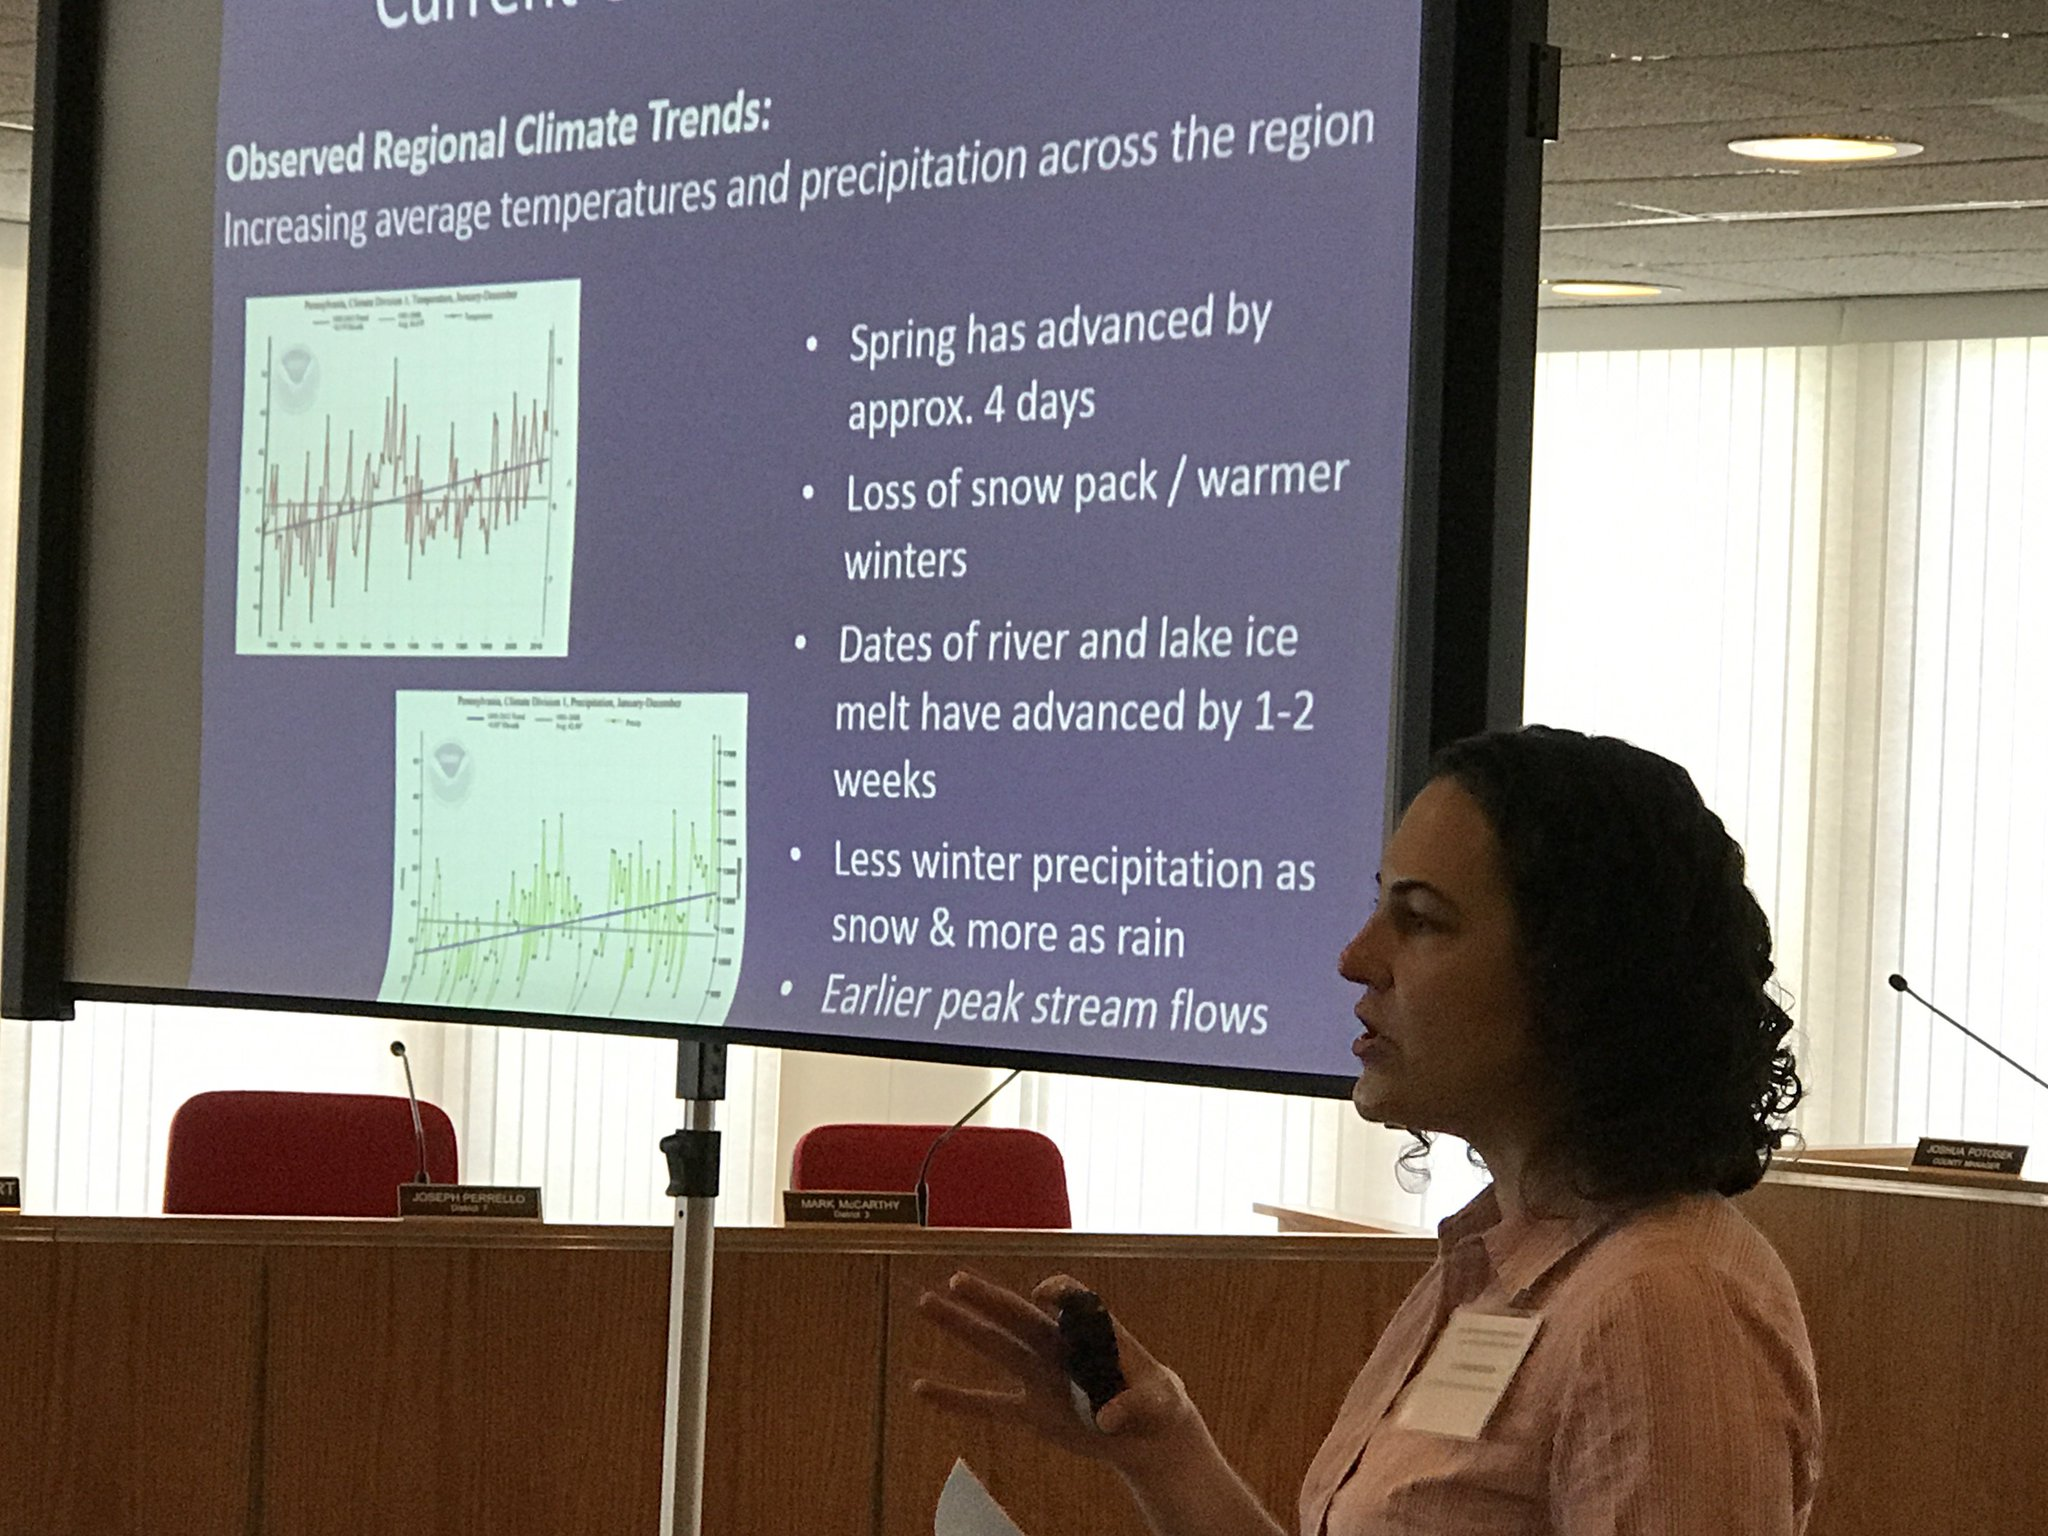 Stephanie P. Dalke, Pinchot Institute for Conservation at Watershed Resiliency conference in Monticello, NY https://t.co/8ic2Z7kPKH